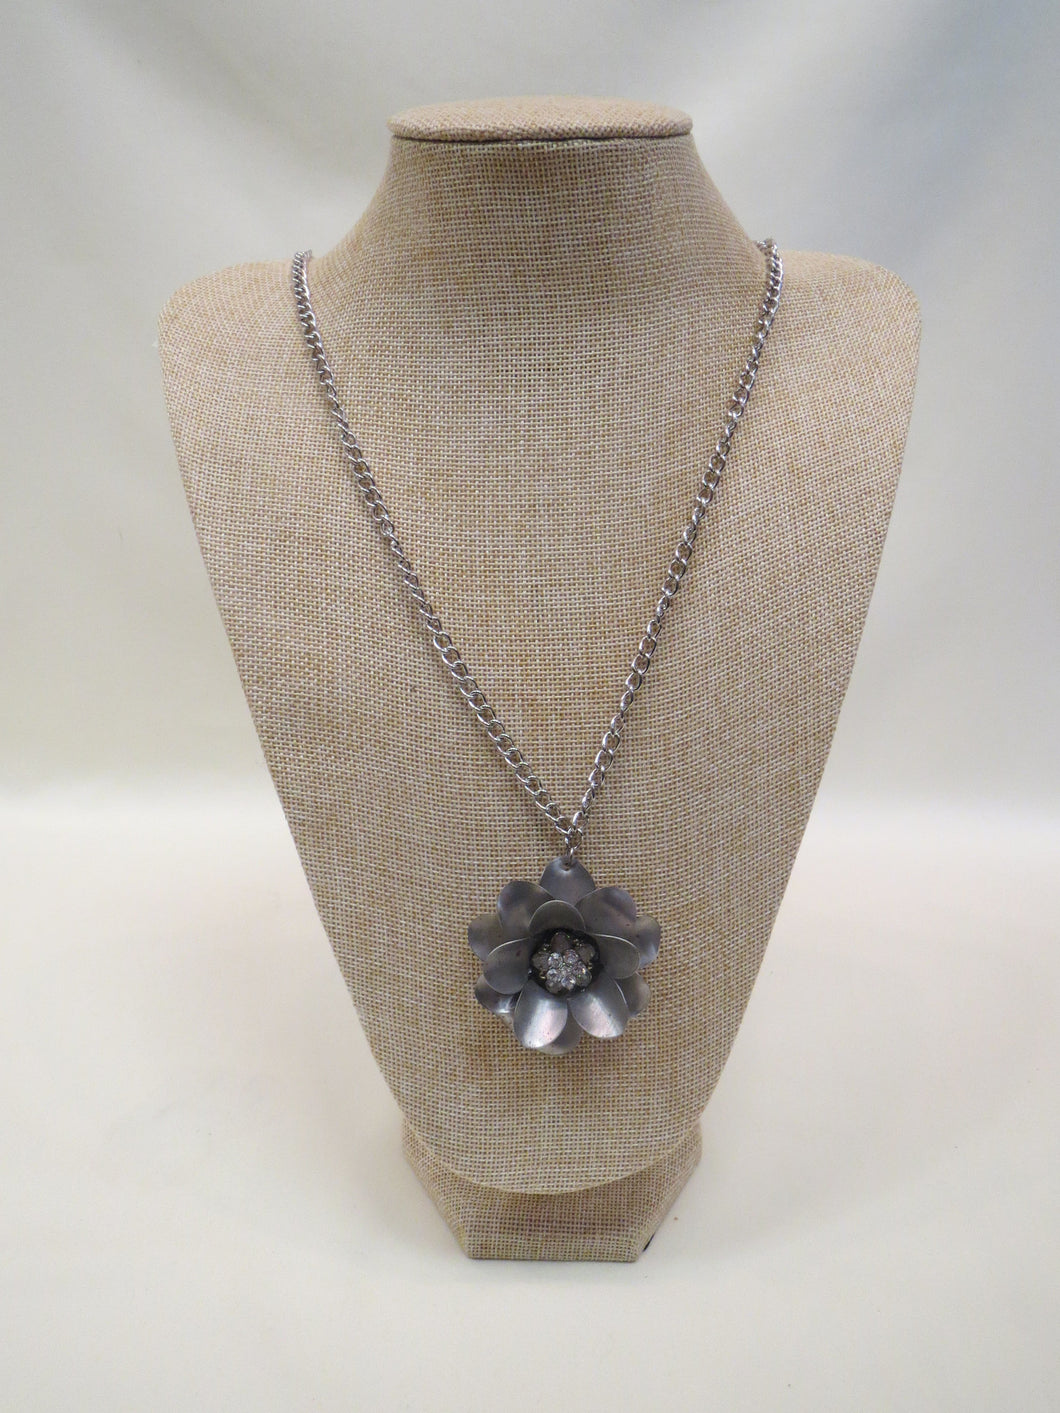 ADO Embellished Metal Rose on Long Adjustable Chain | All Dec'd Out